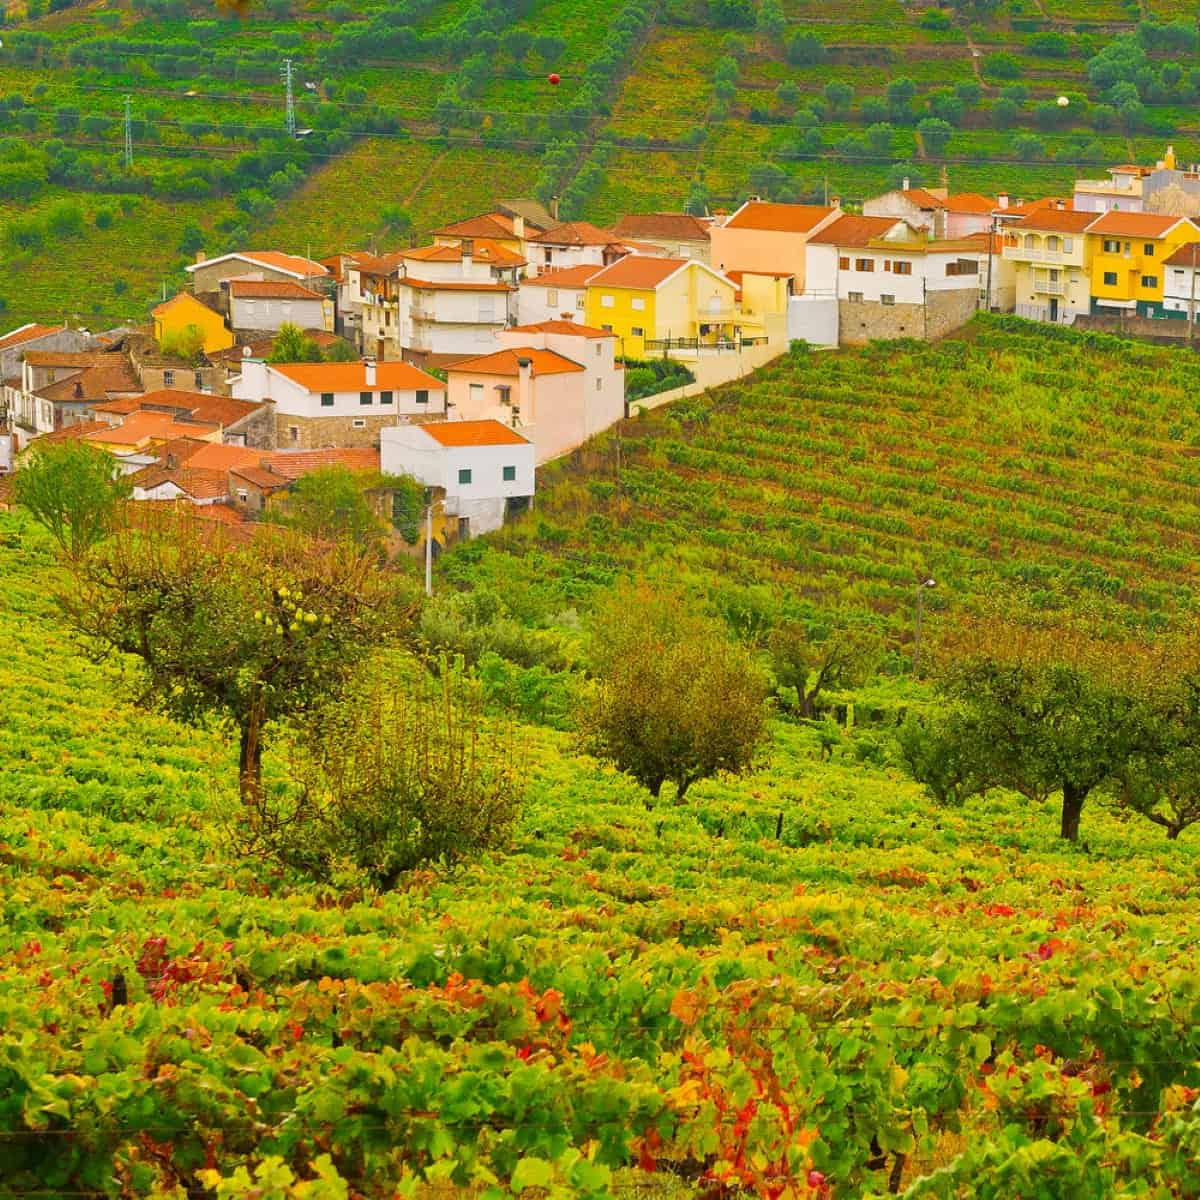 Autumn view in the Vineyards on the Hills of Portugal